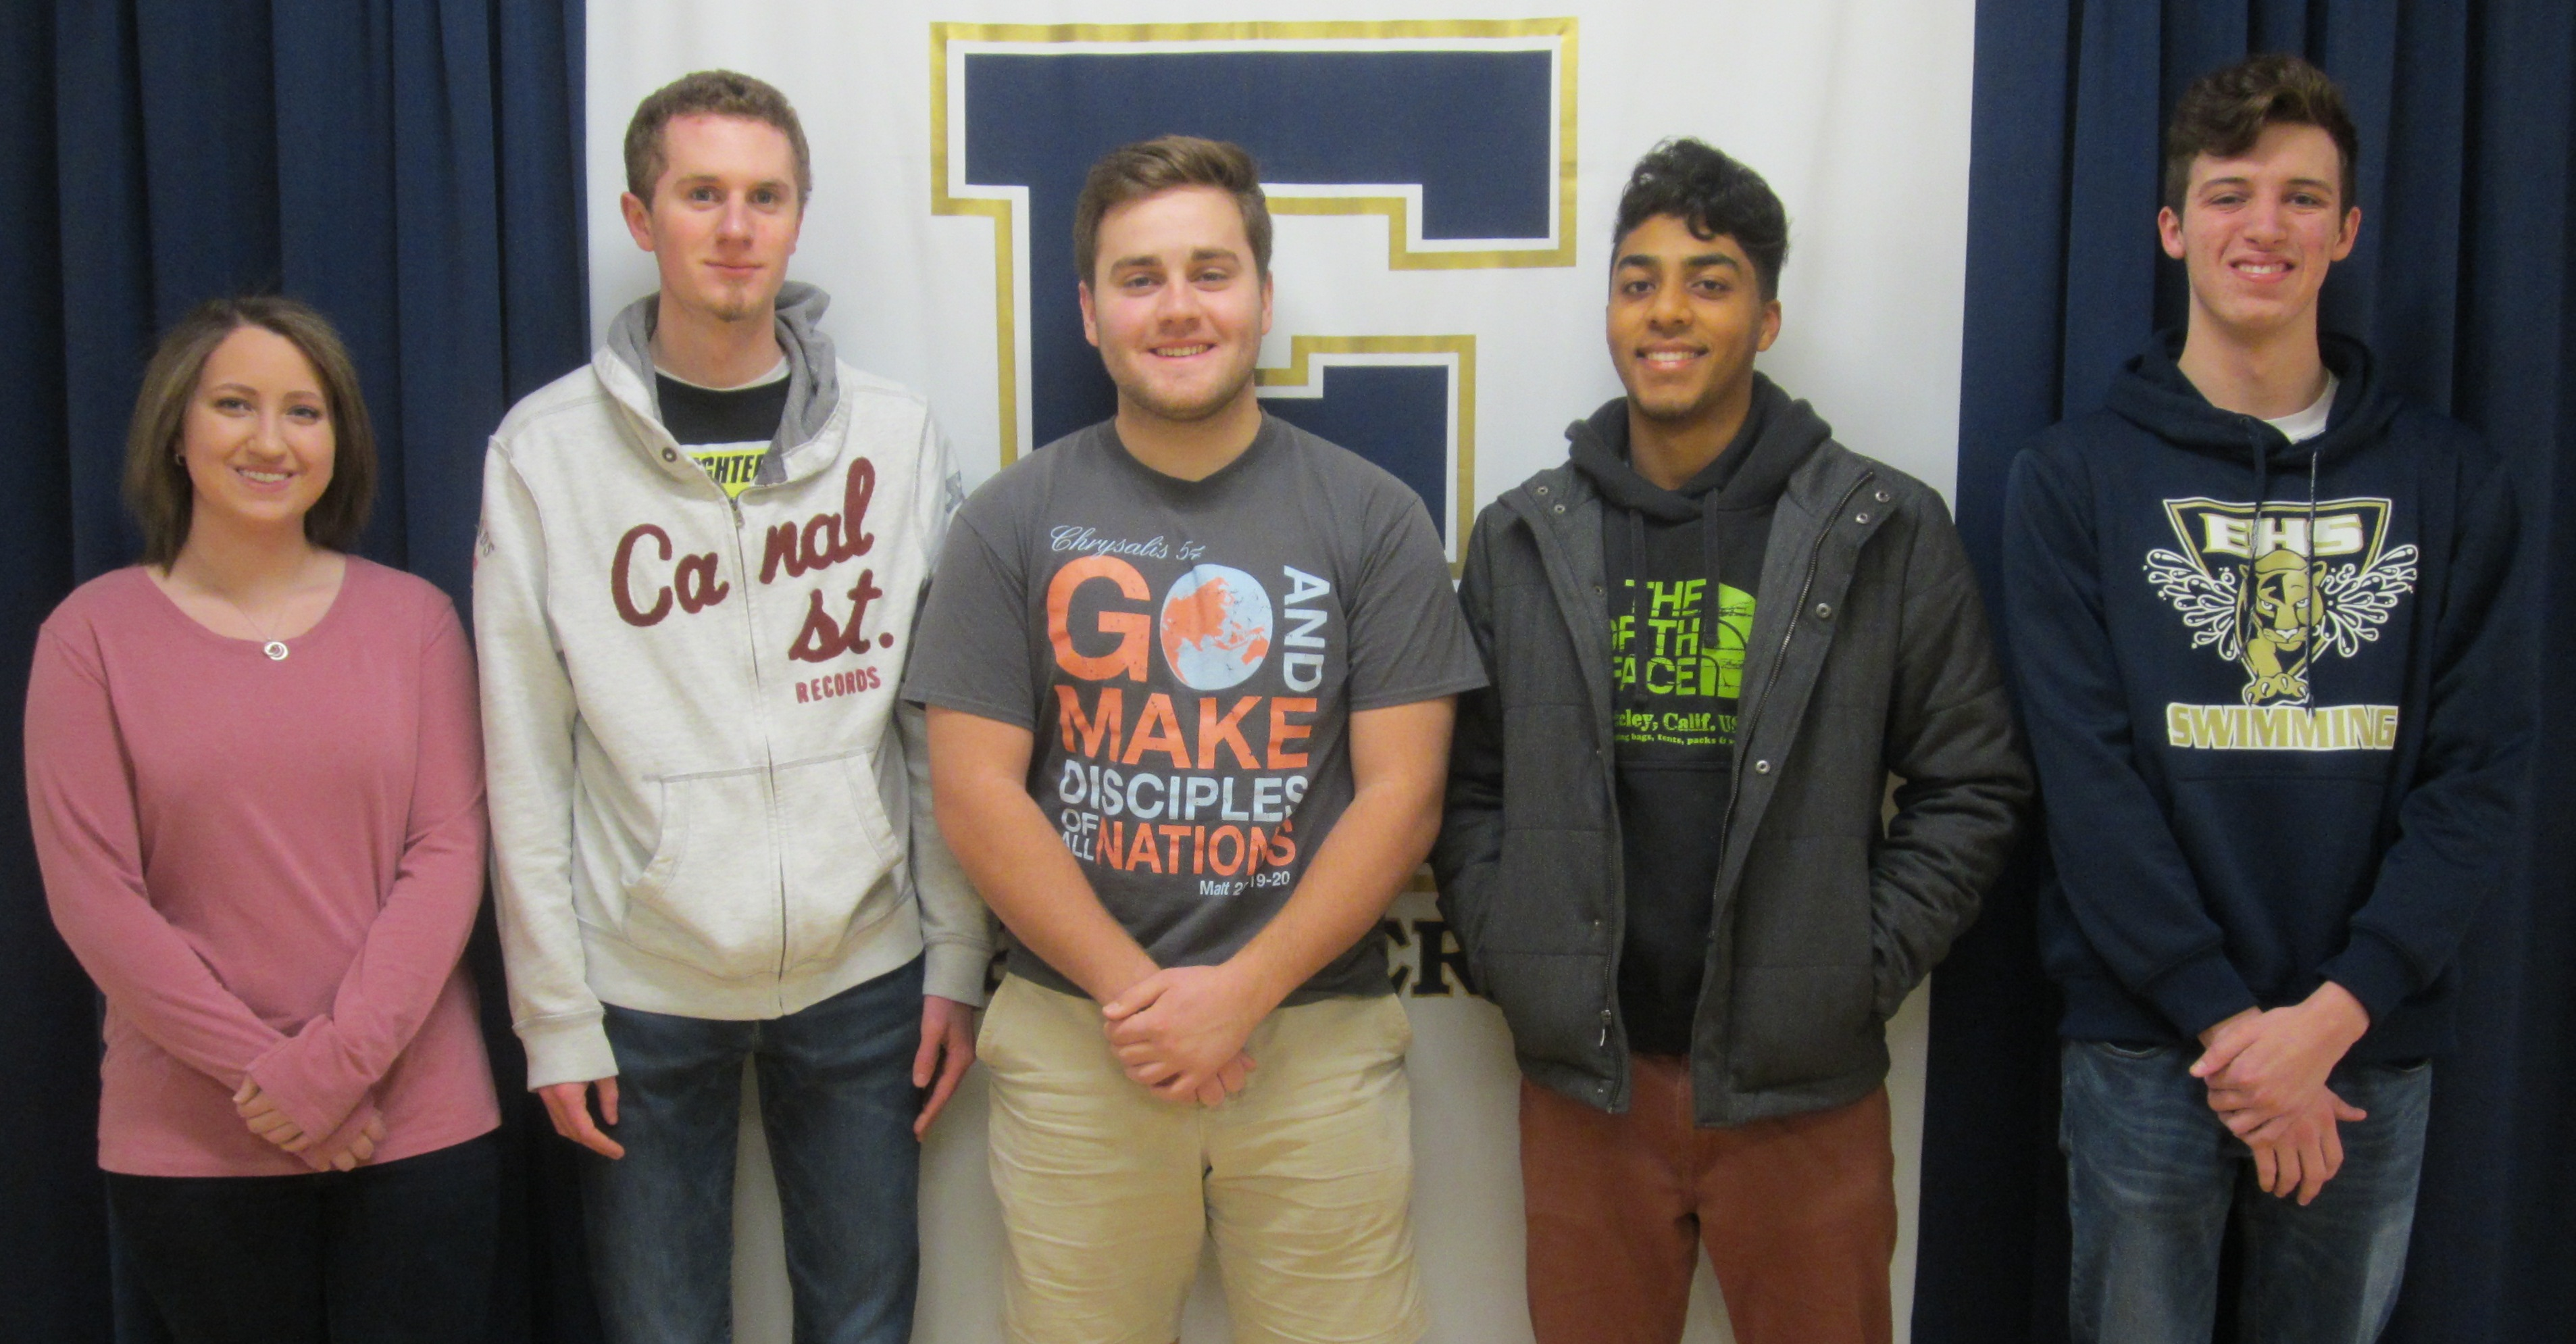 Jake Breunig, Riley Eriksen, Ameer Haider, Thomas Hutto, and Nathan Johnson, the 5 Finalist from EHS